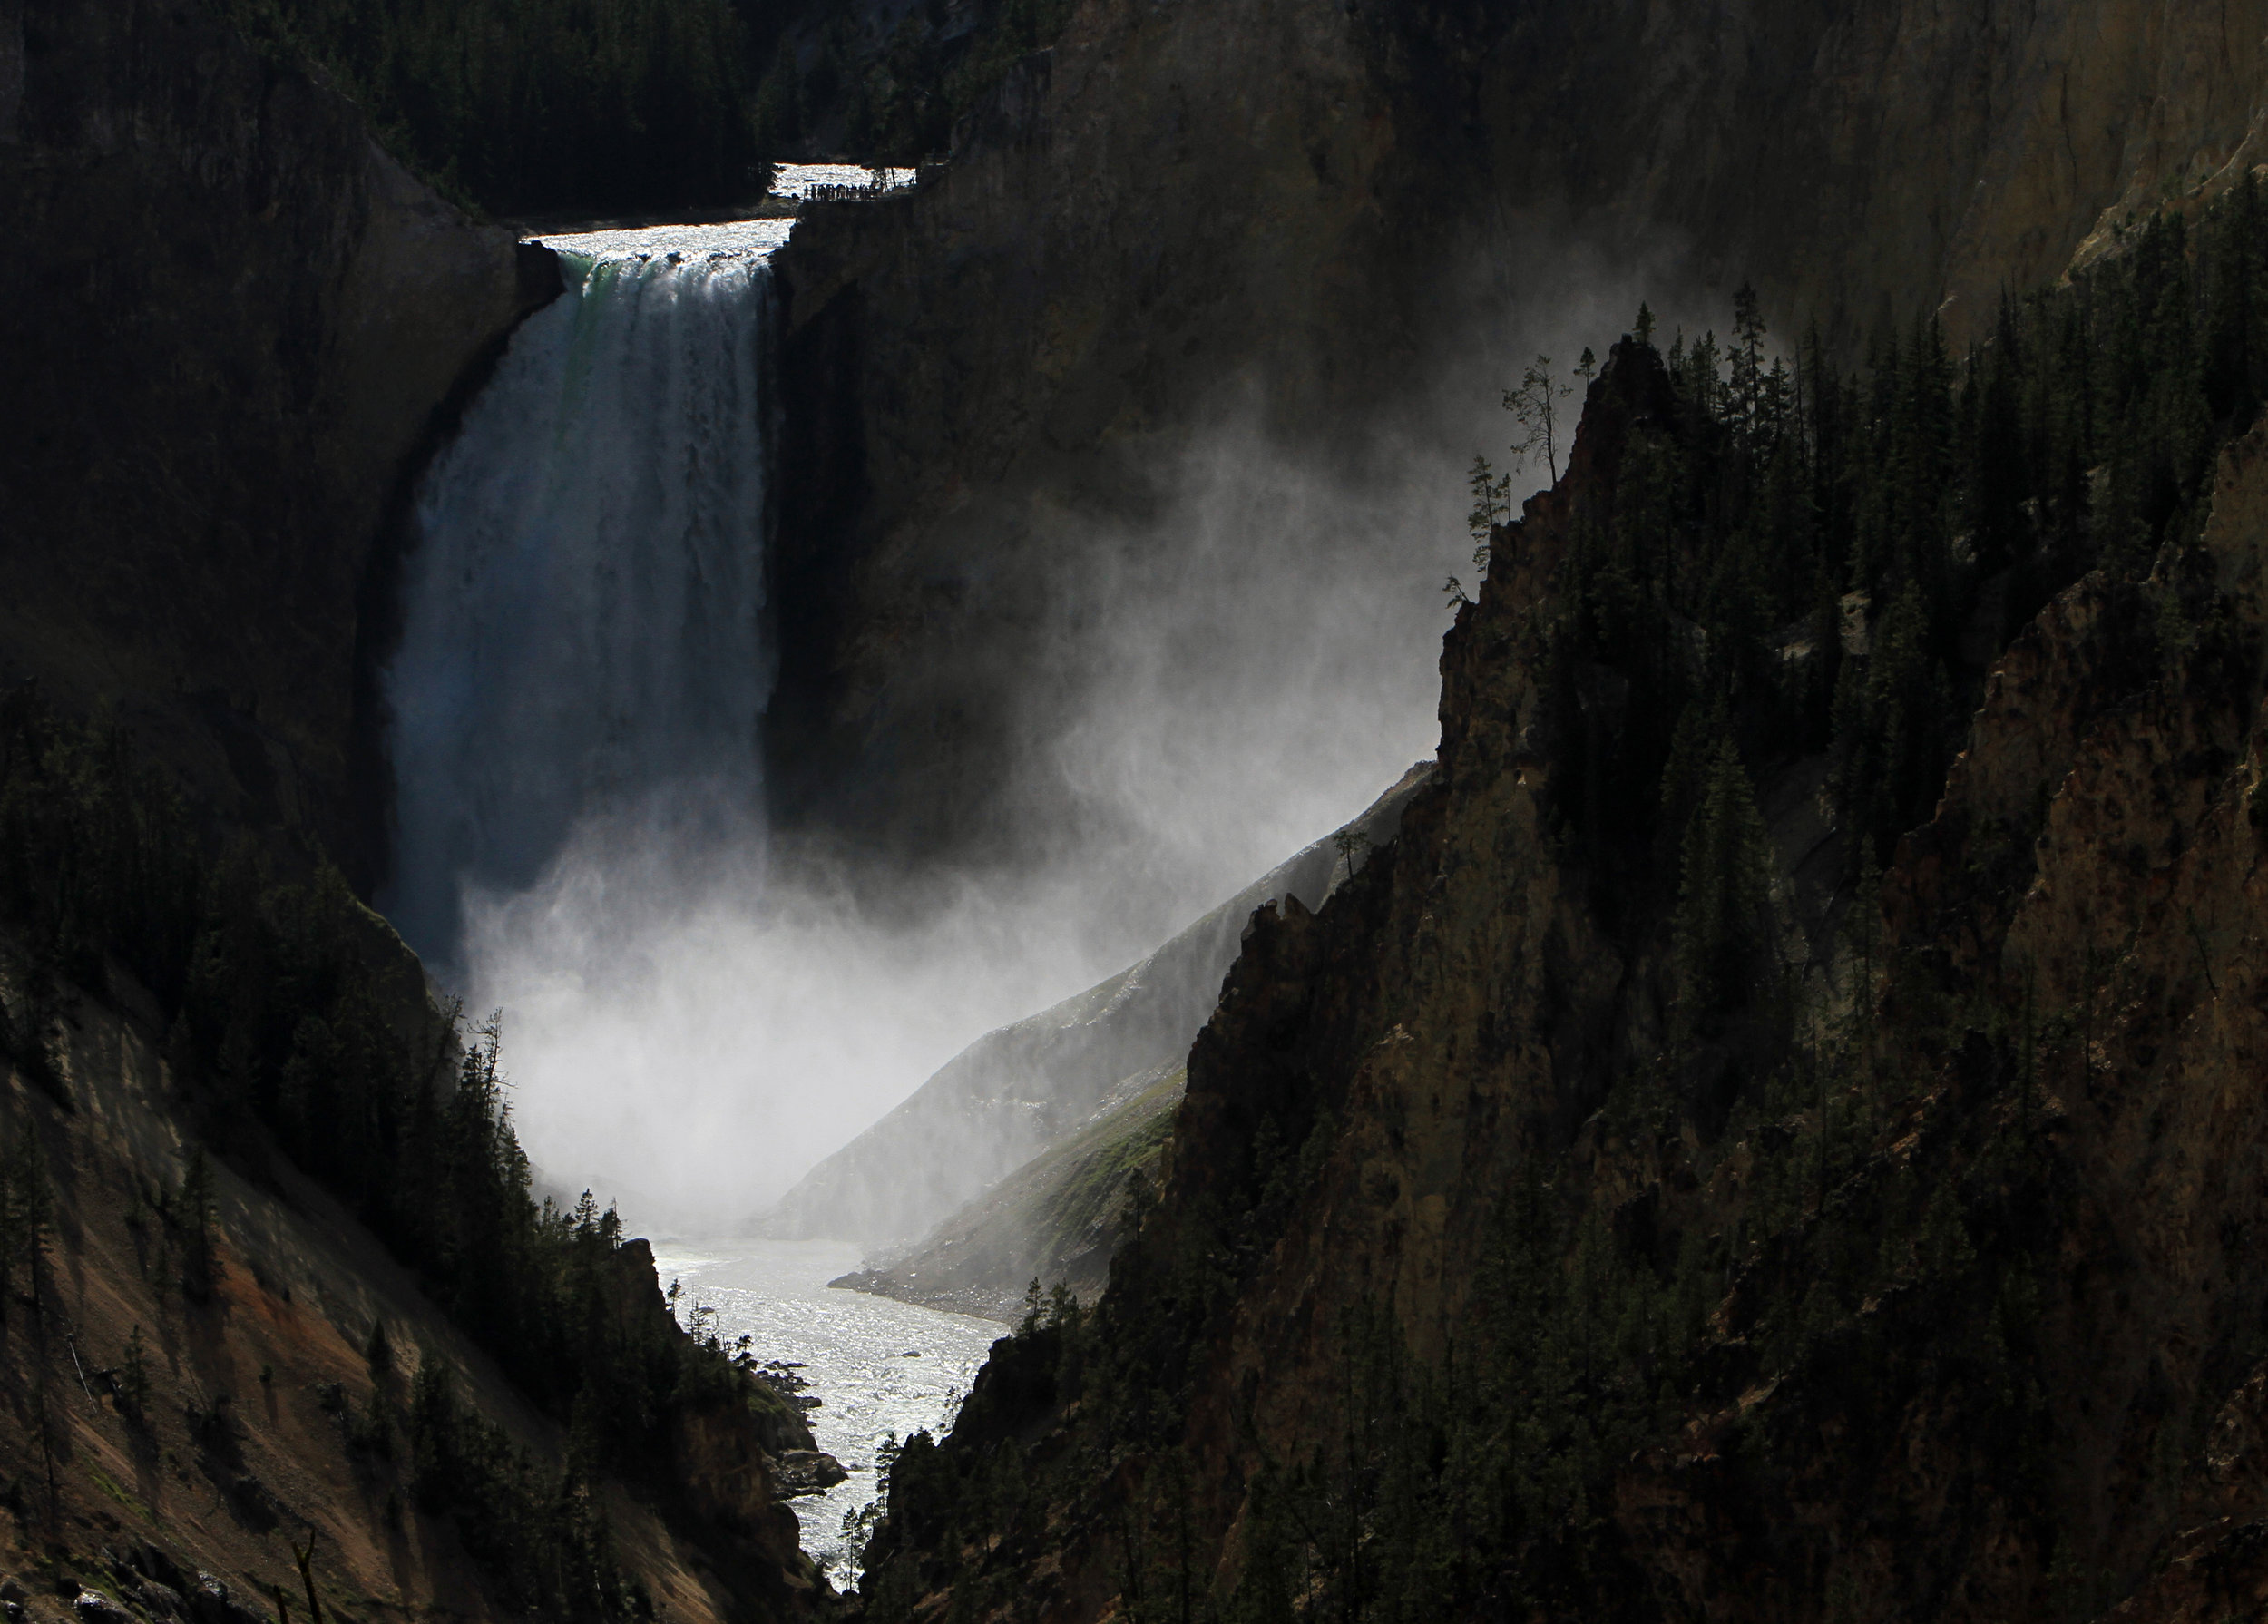 WATER IN THE NATIONAL PARKS